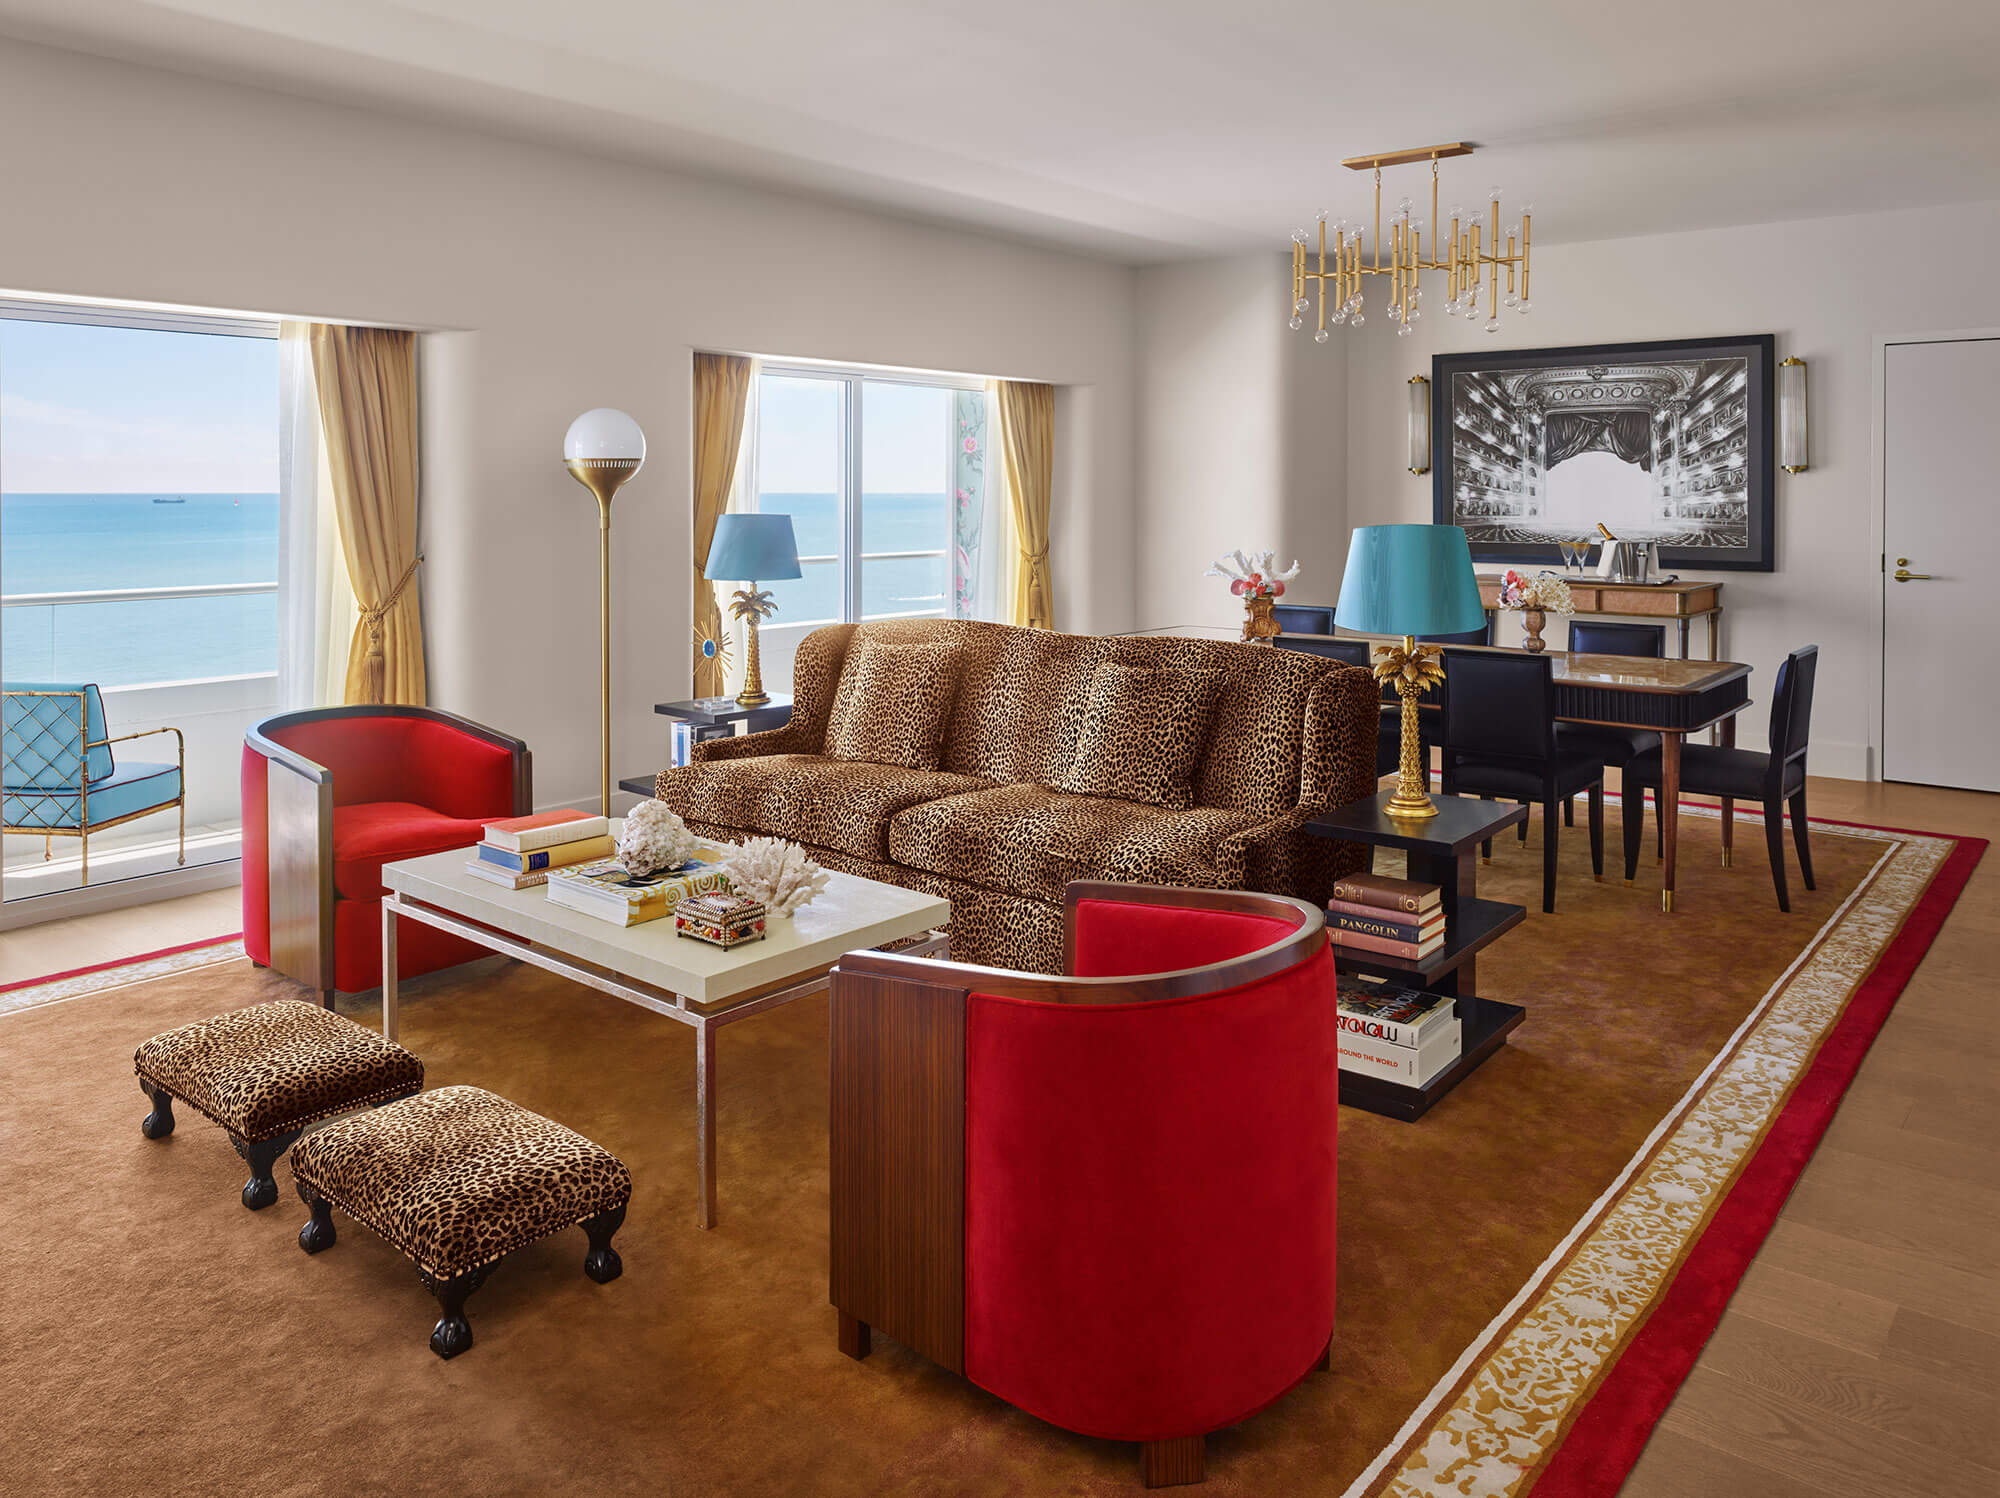 Faena_Suite_Living_Room_Final.jpg